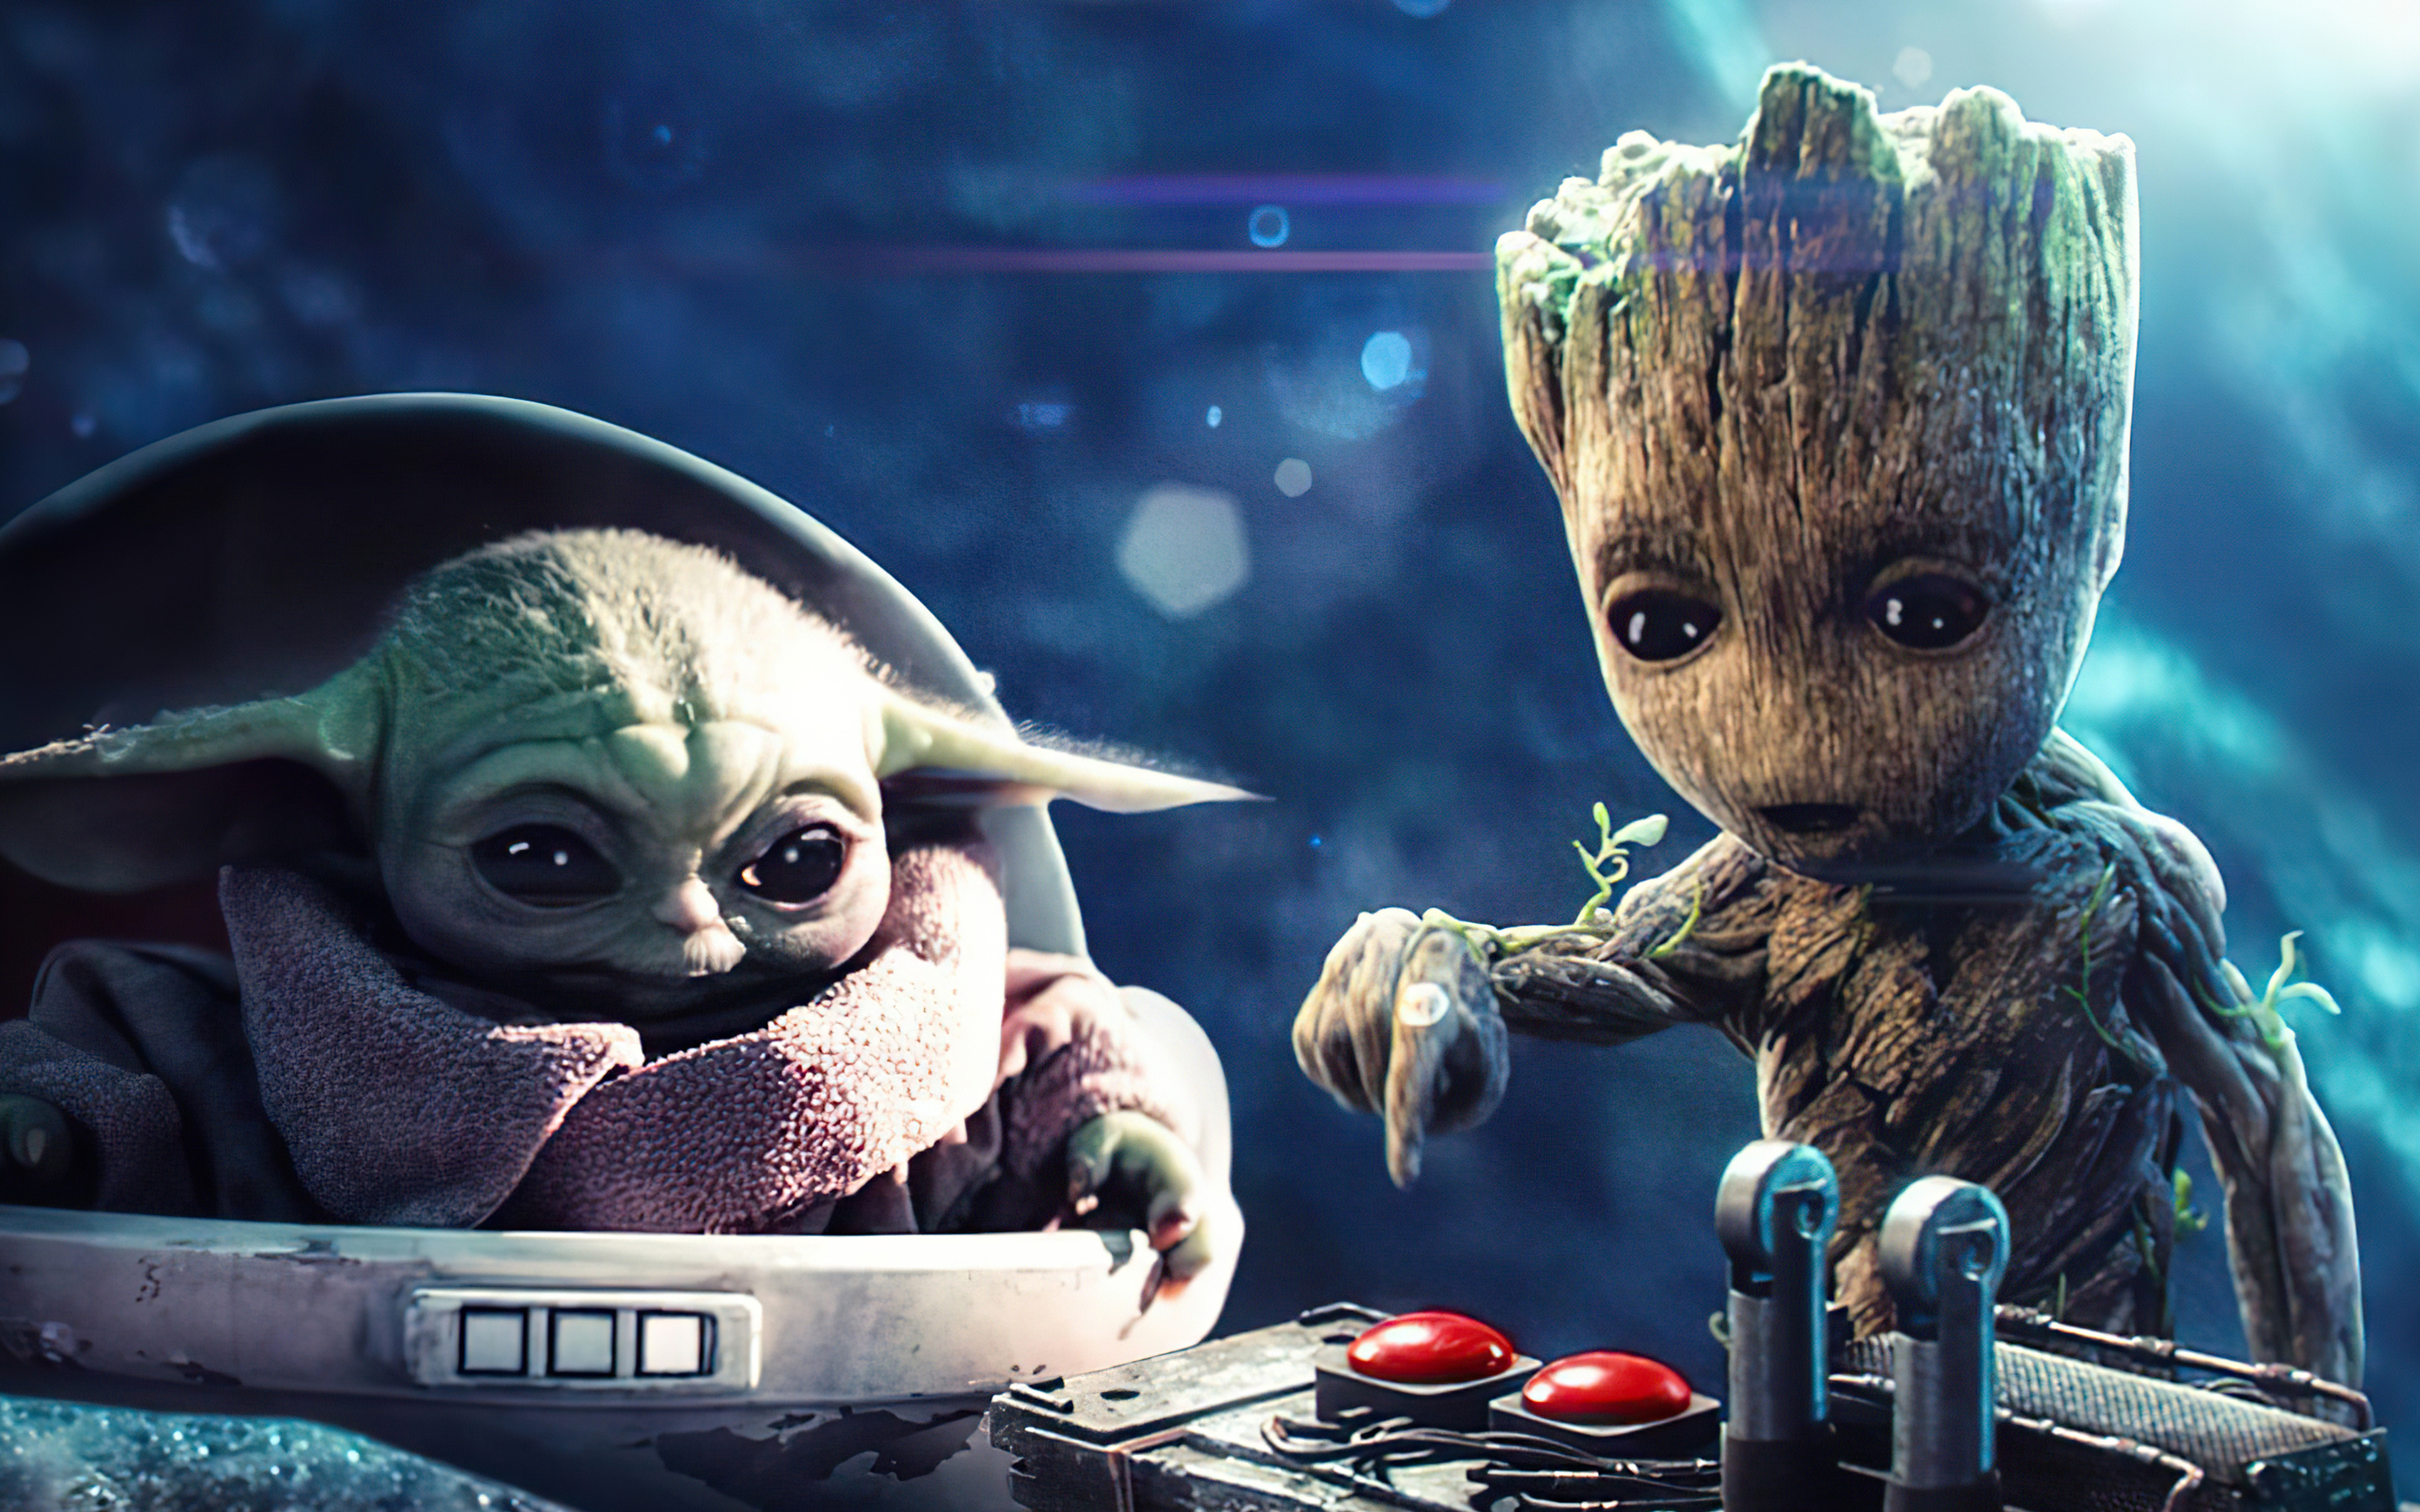 2880x1800 Baby Groot And Baby Yoda Macbook Pro Retina Hd 4k Wallpapers Images Backgrounds Photos And Pictures